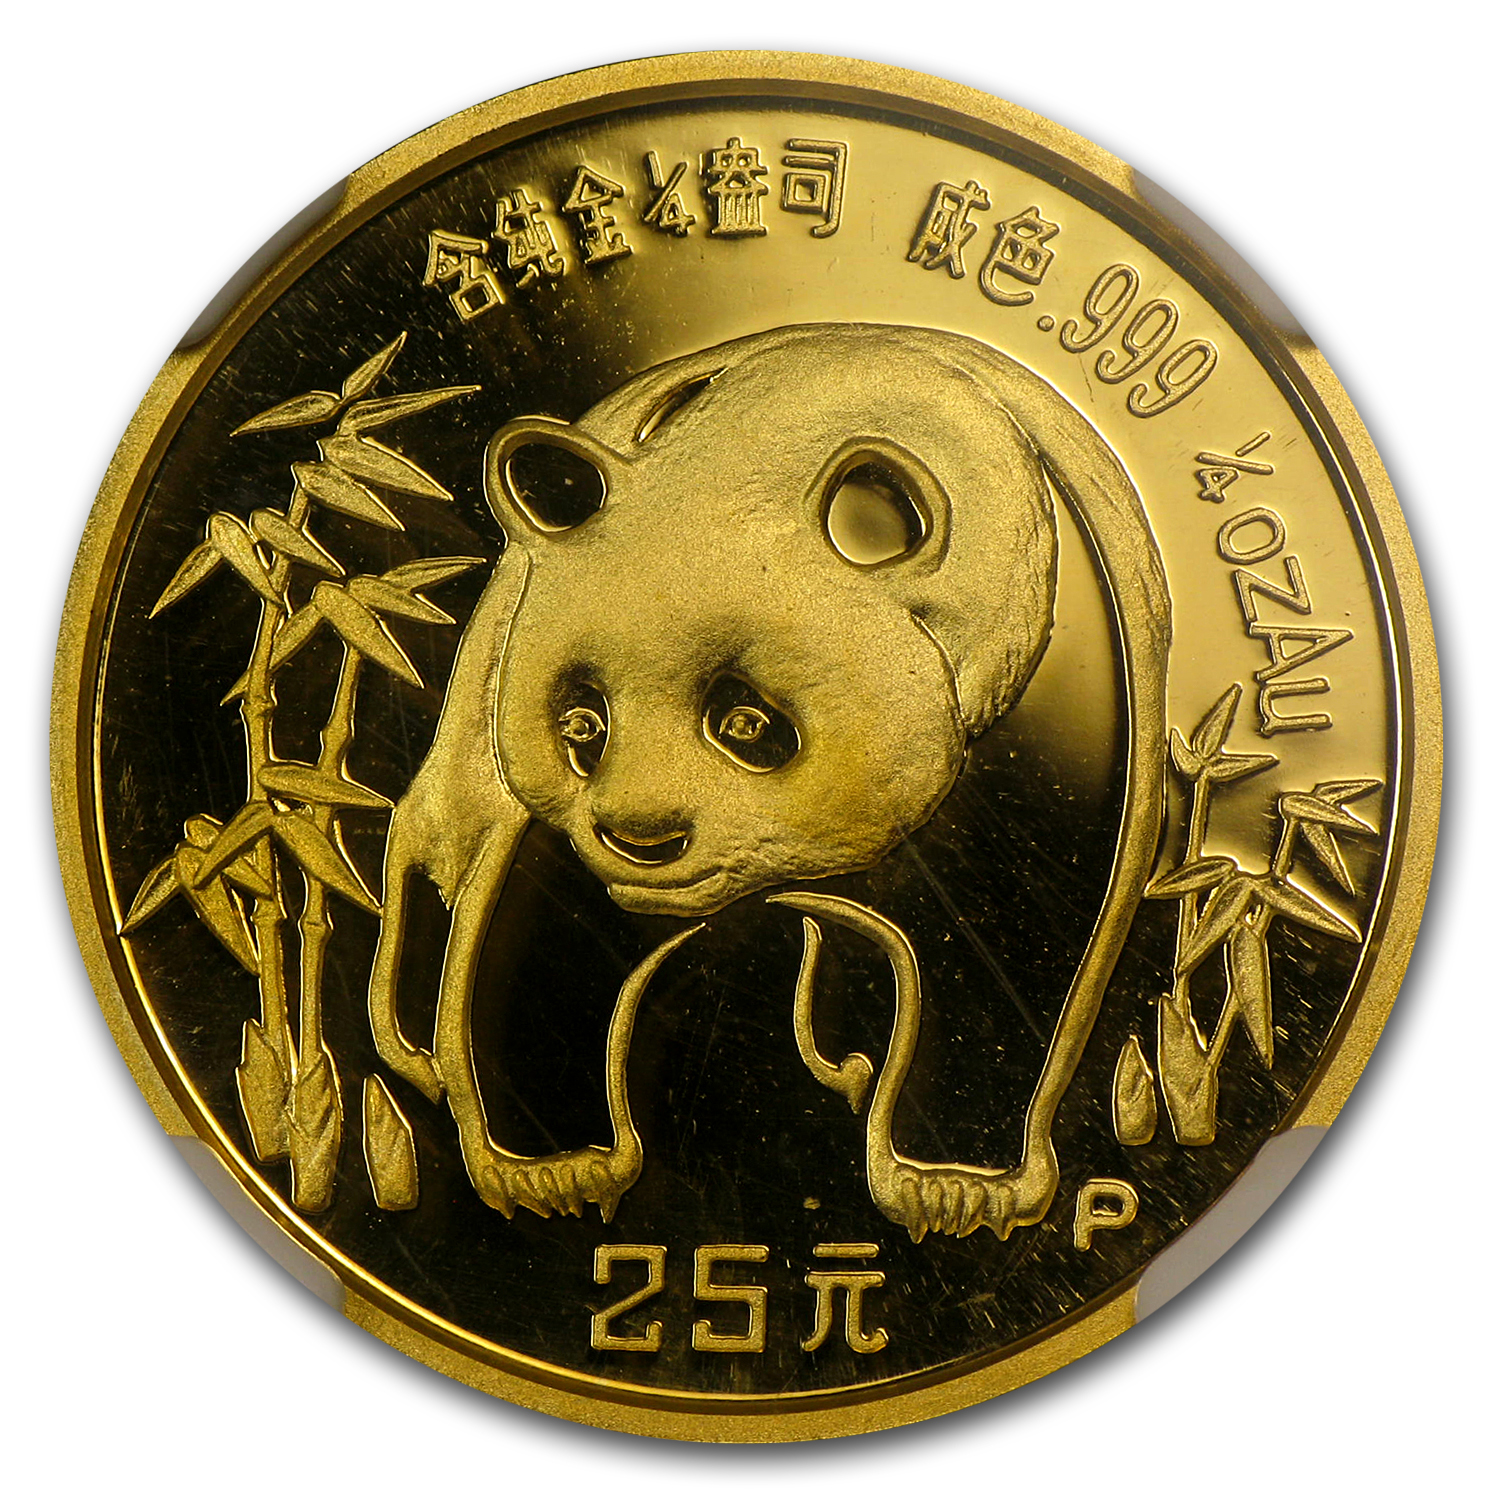 1986 (1/4 oz Proof) Gold Chinese Pandas - PF-68 UCAM NGC